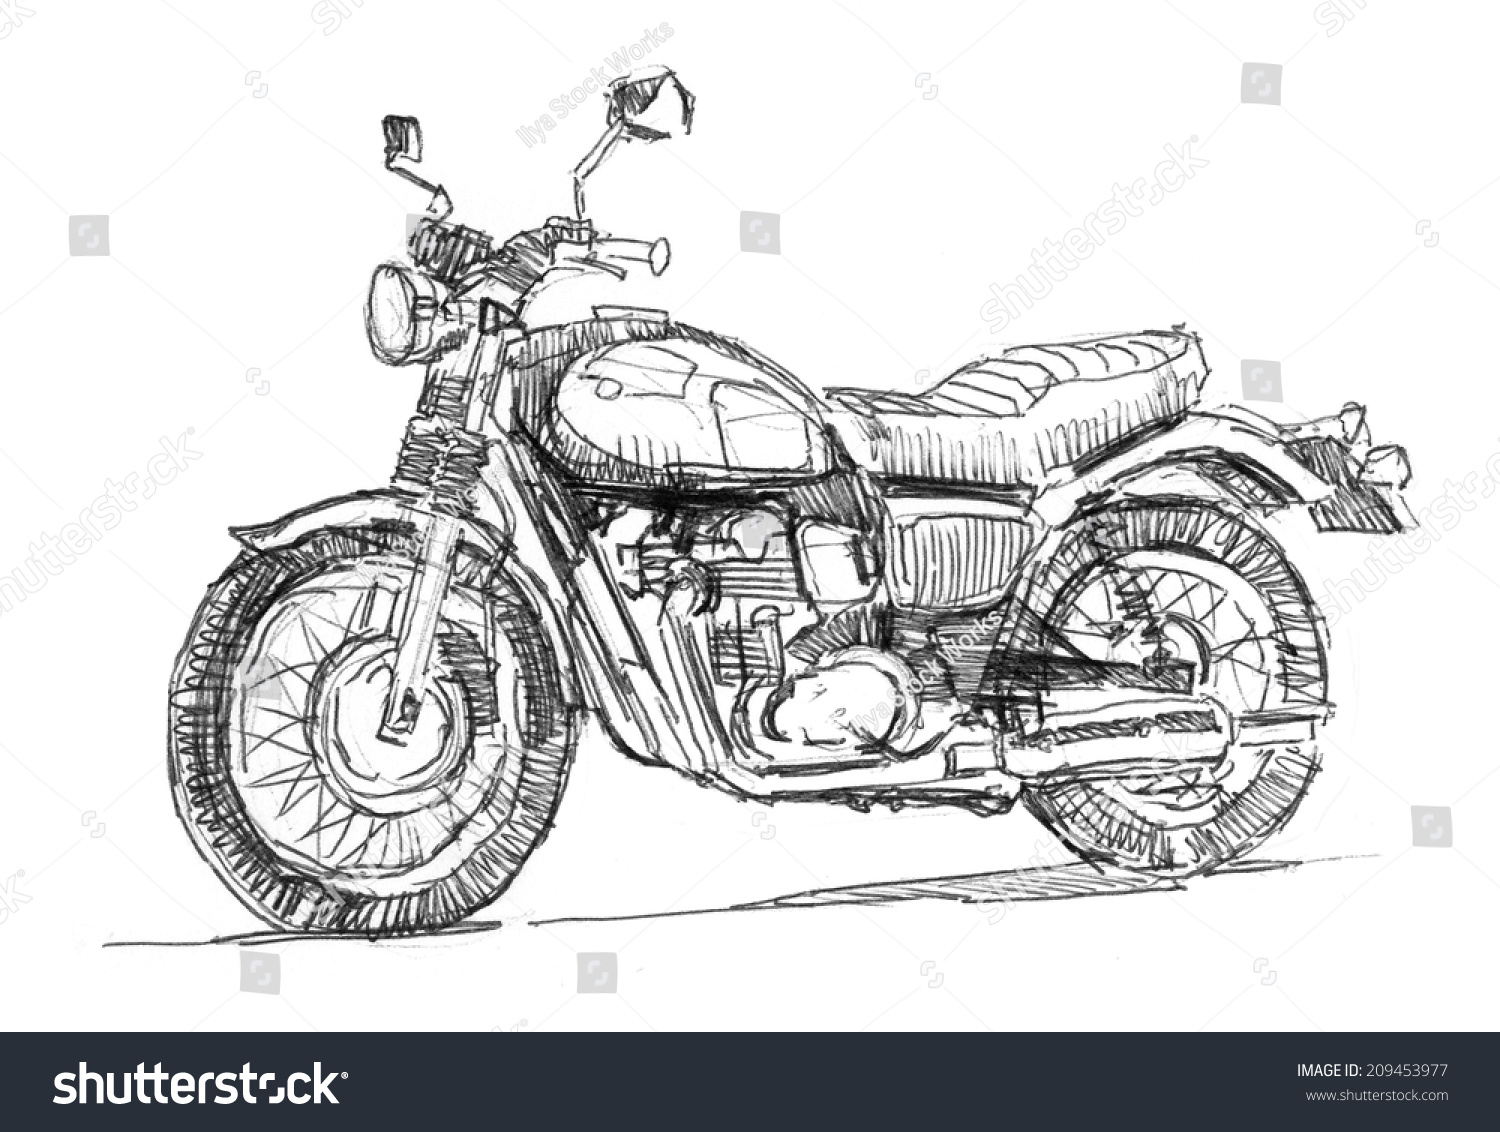 Notebook And Pen Sketch Stock Vector Art More Images Of: Classic Motorcycle Pen Sketch Drawing Isolated Stock